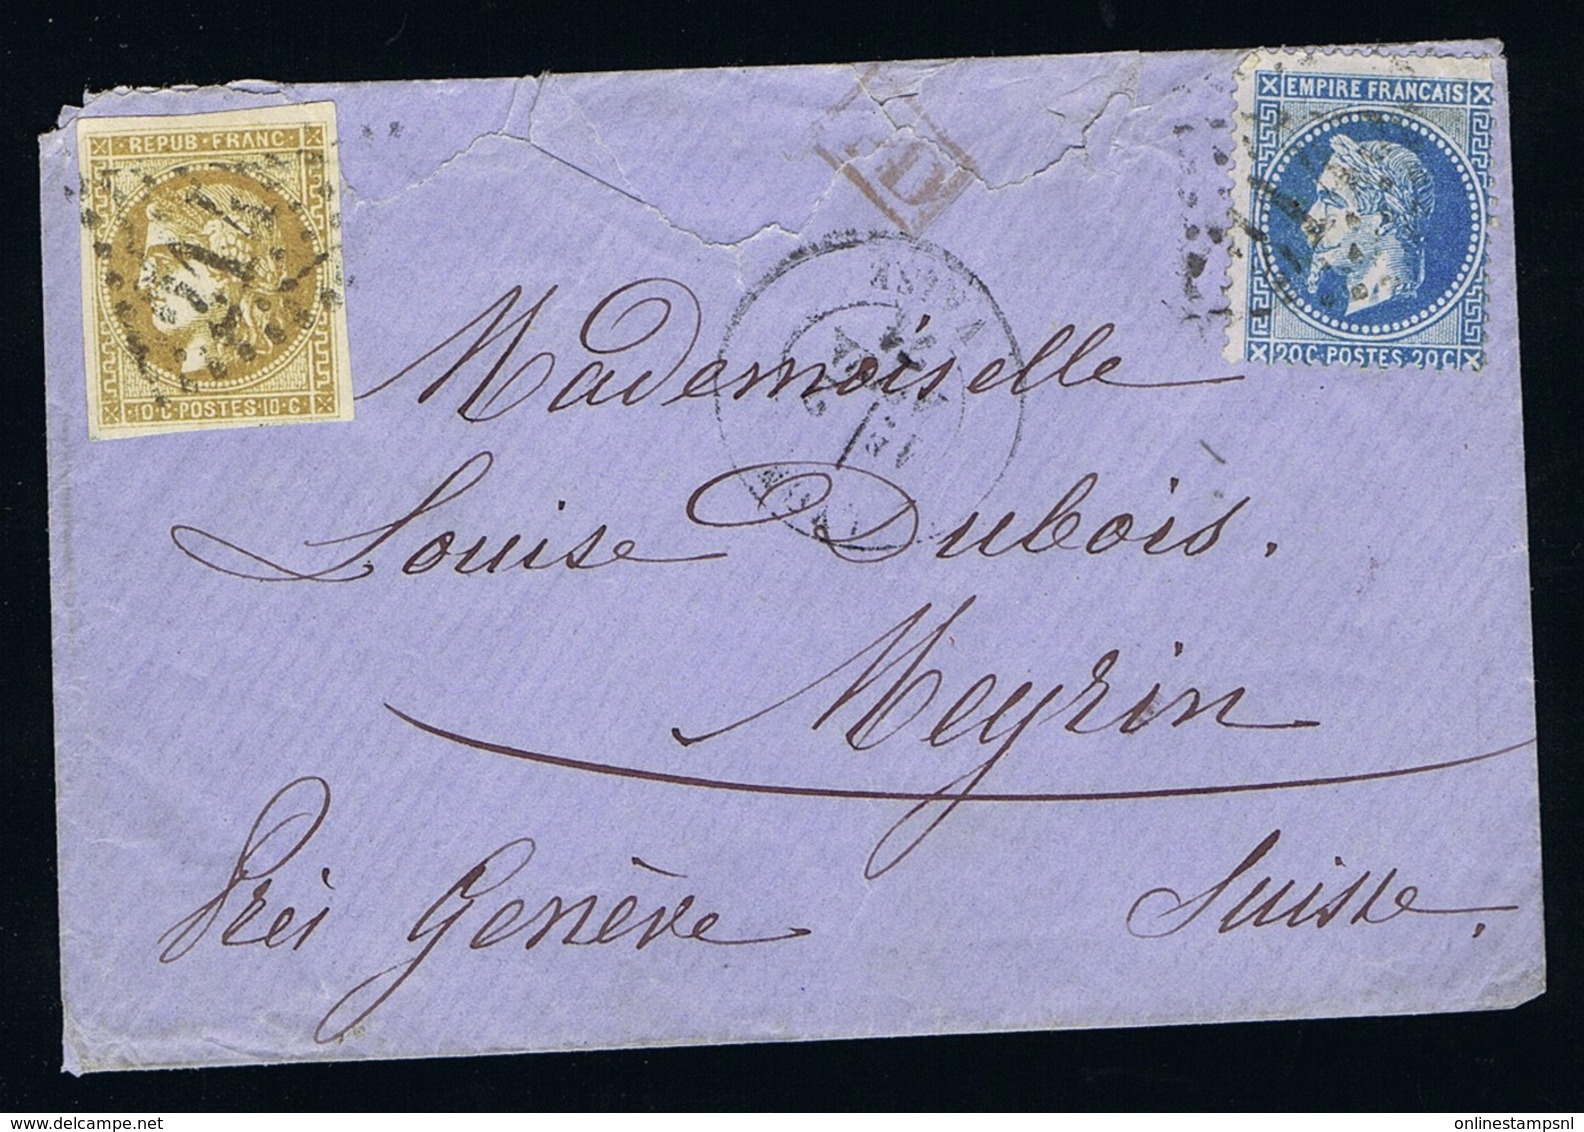 France Cover Early Tranitional Period 1871 Yv 43 + 29 Astra -> Meyrin Suisse  PD In Red  Meyrin Arrival Cancel - 1870 Uitgave Van Bordeaux